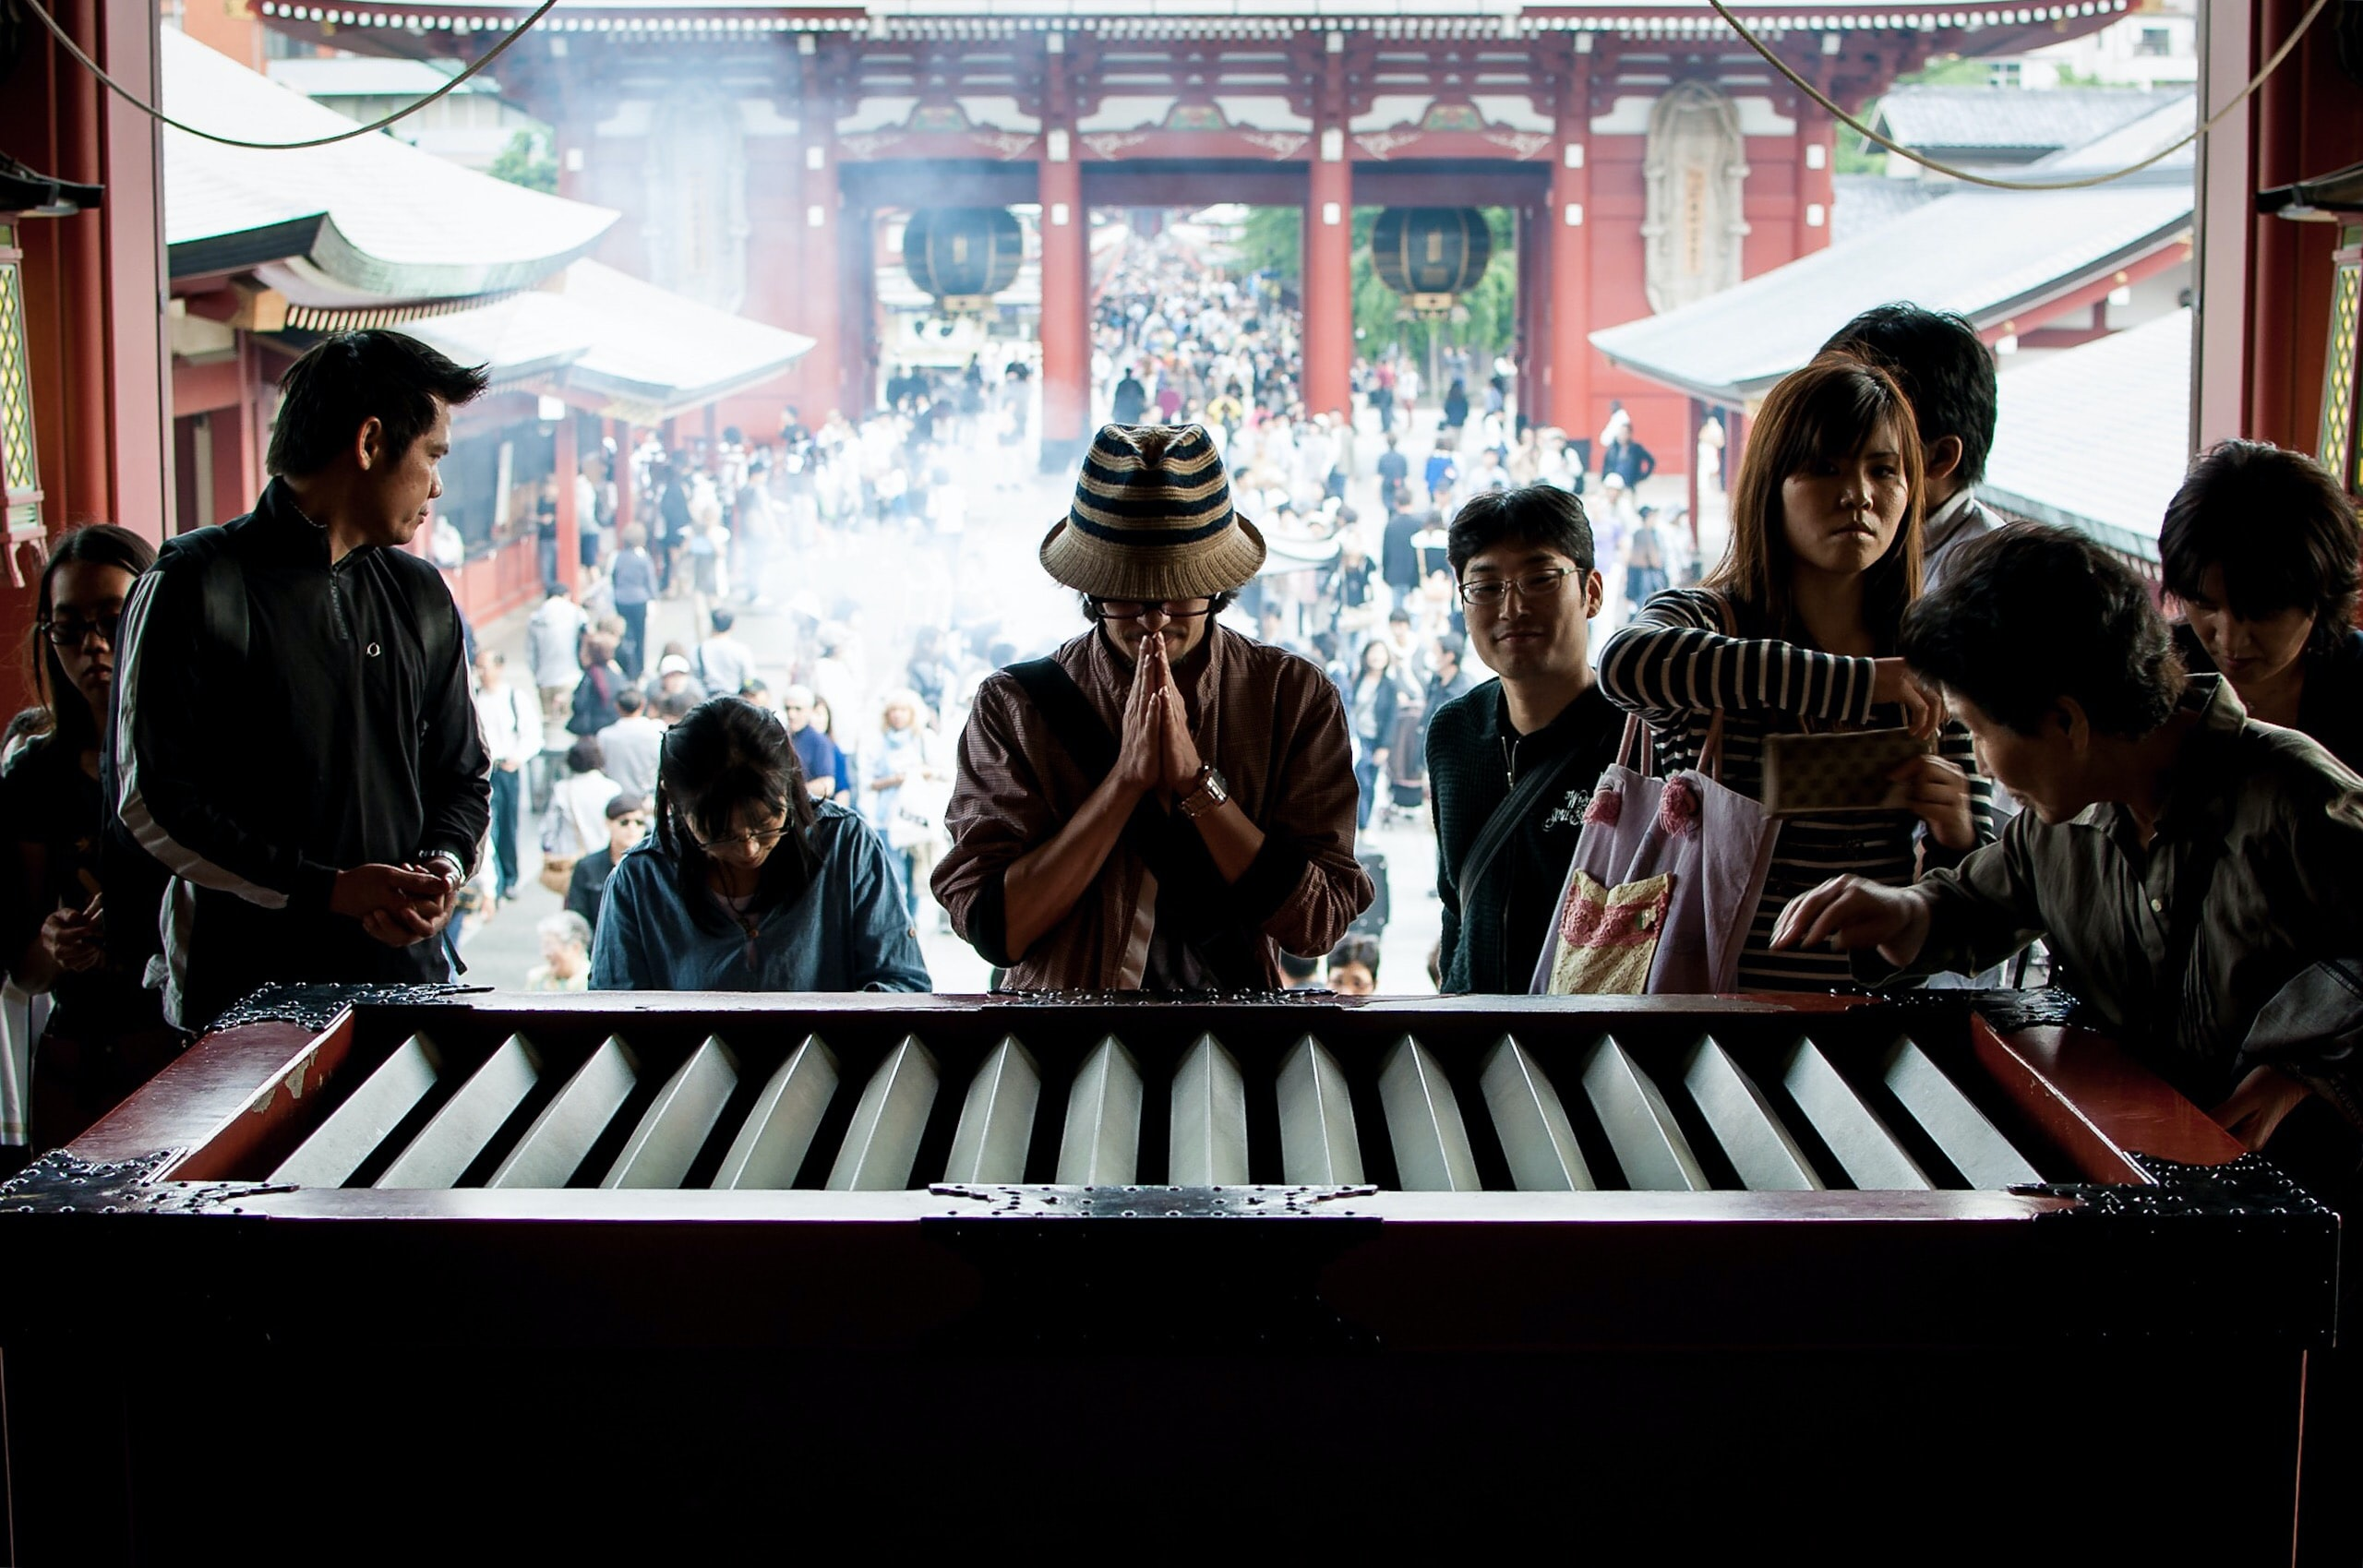 Diverse group of tourists visit and pray at a landmark Asian temple